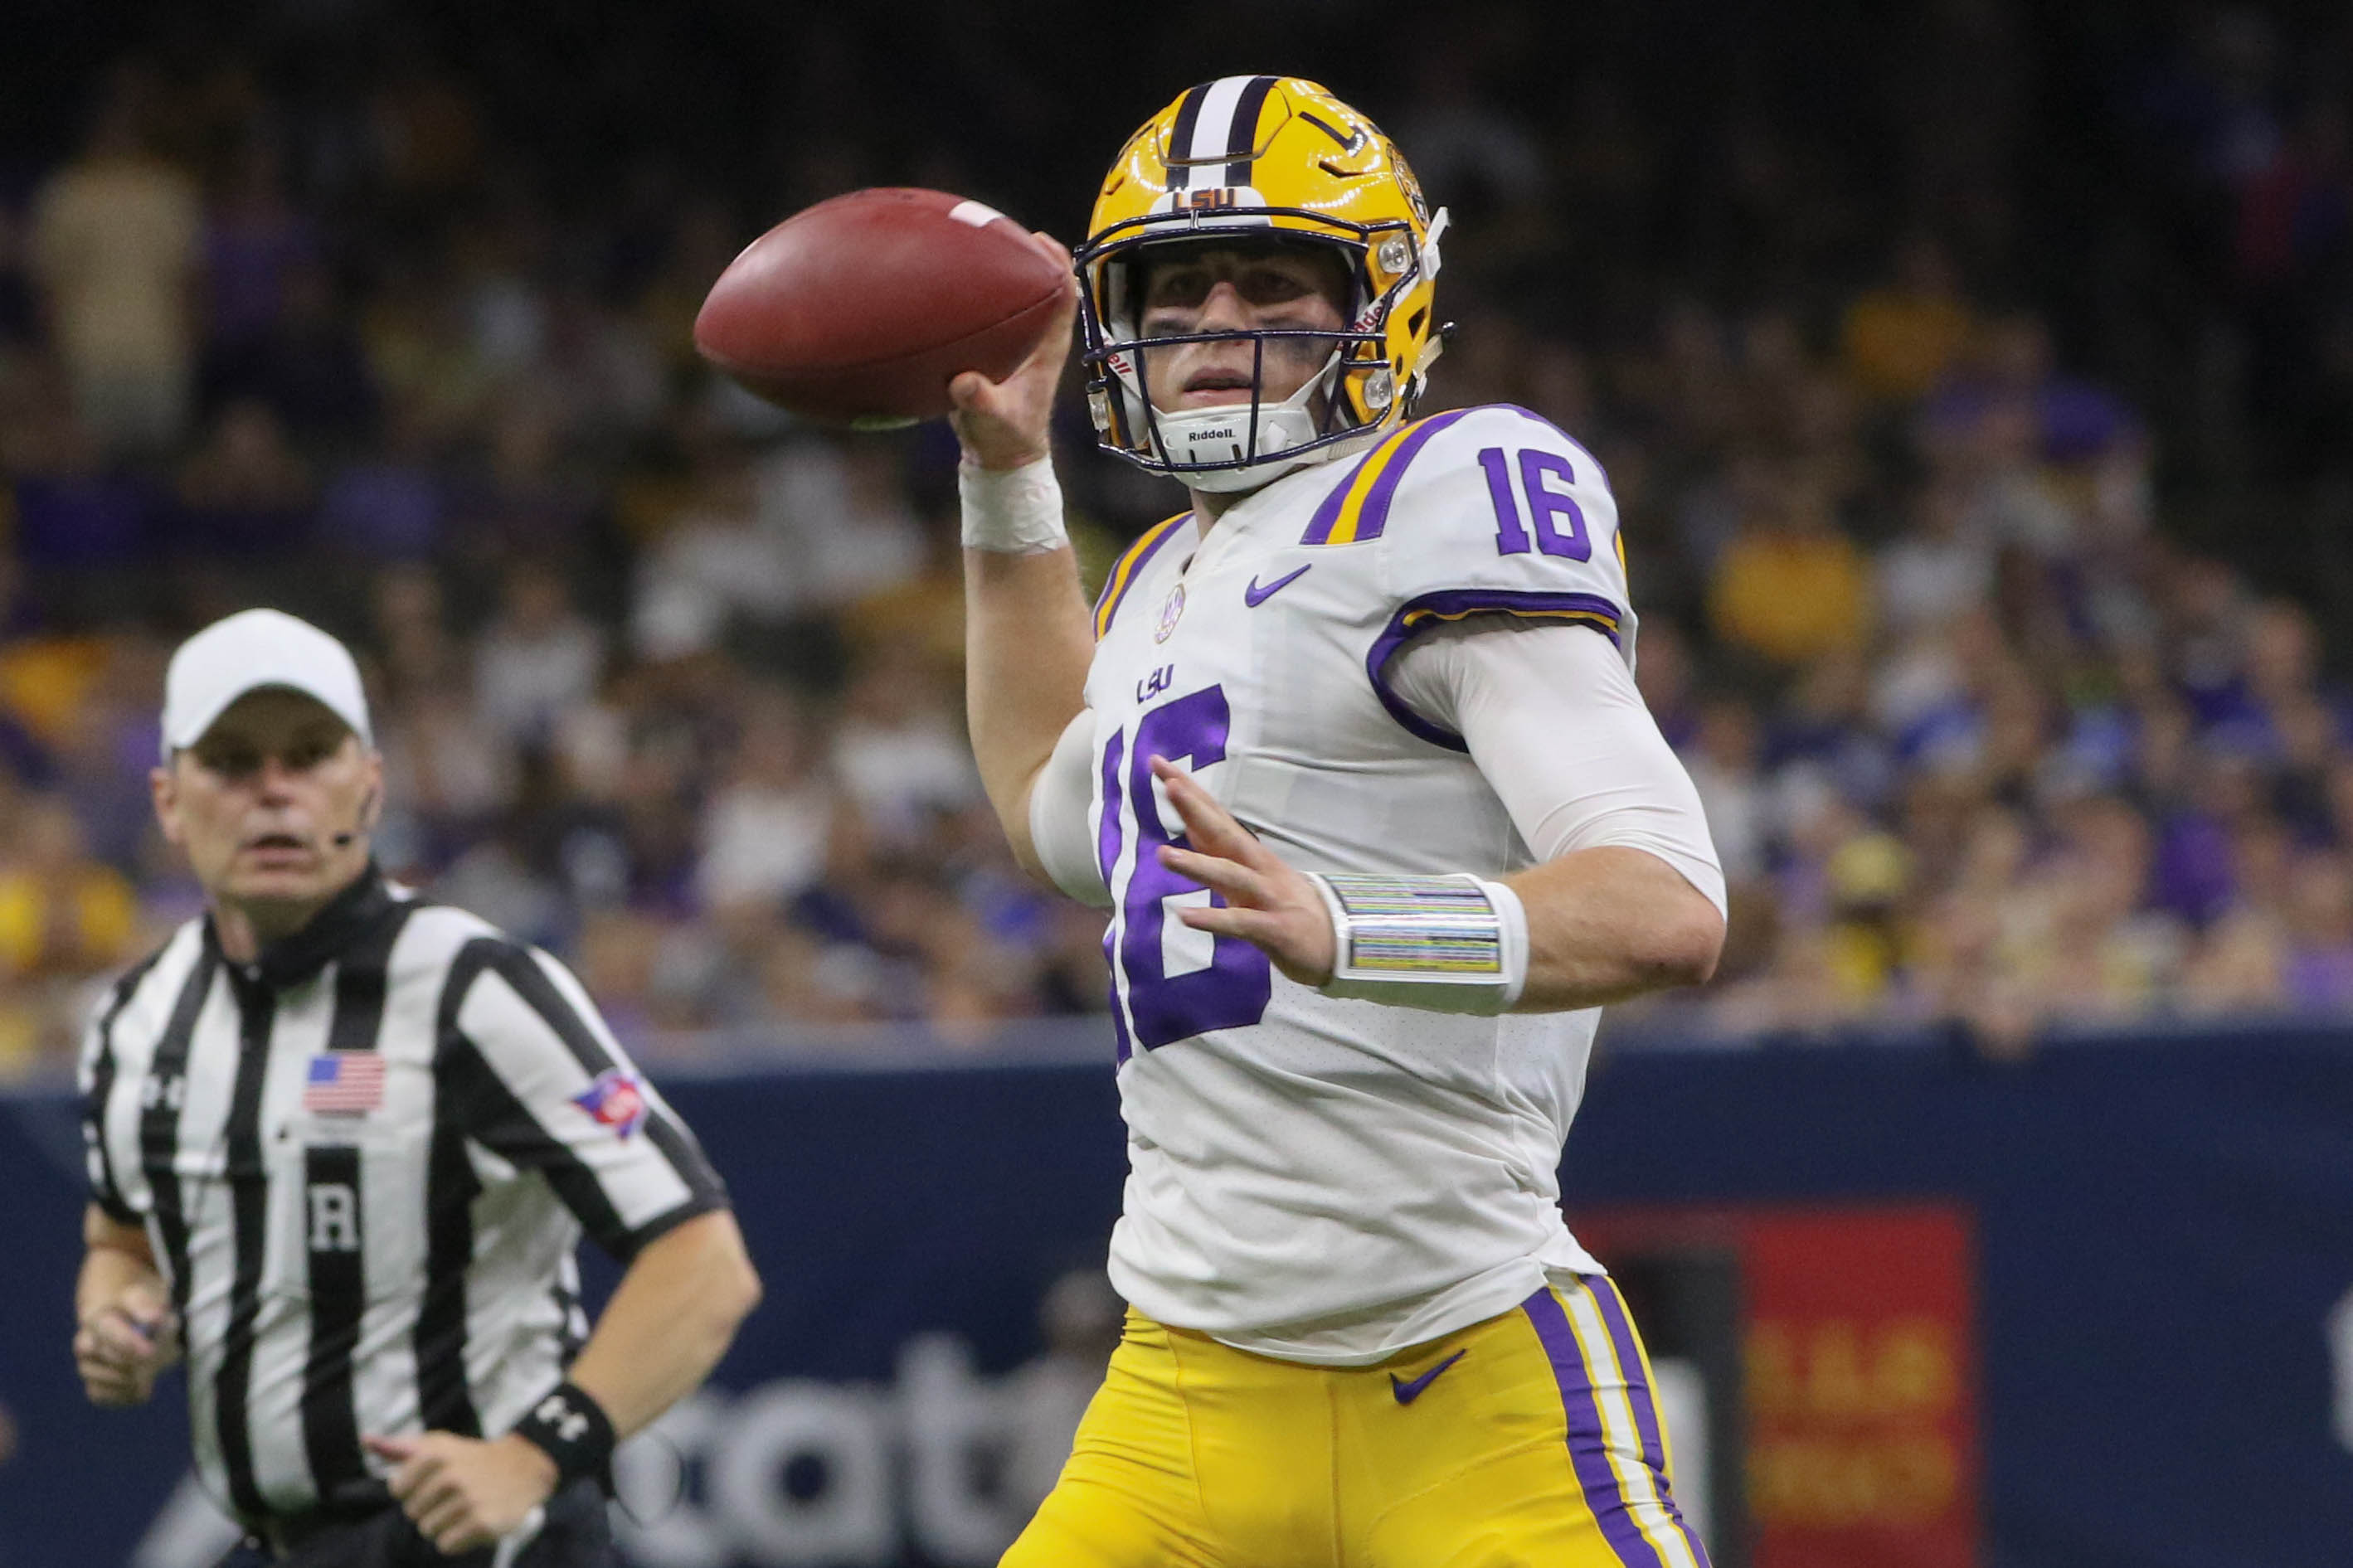 Penalties cost LSU big in 37-7 loss to Miss